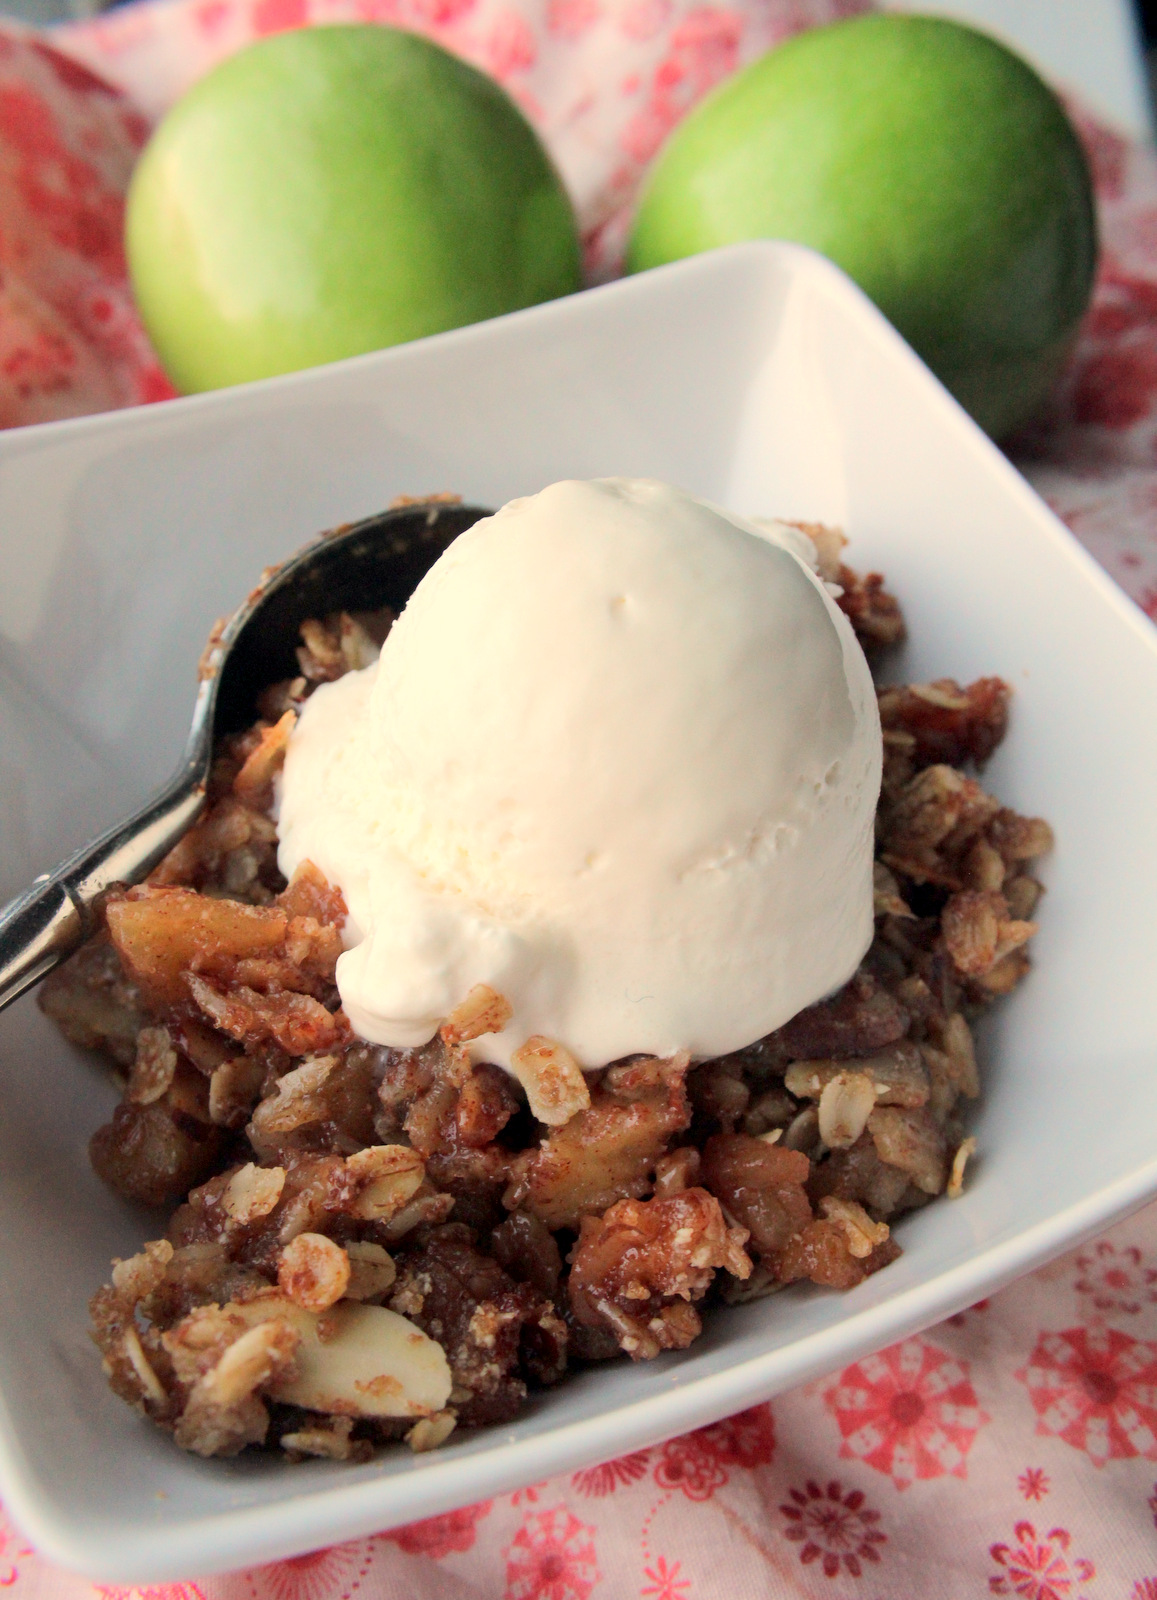 Sweet, fruity with a hint of lemony tang and perfectly spiced with cinnamon and nutmeg this Apple Crisp is simpy the best!